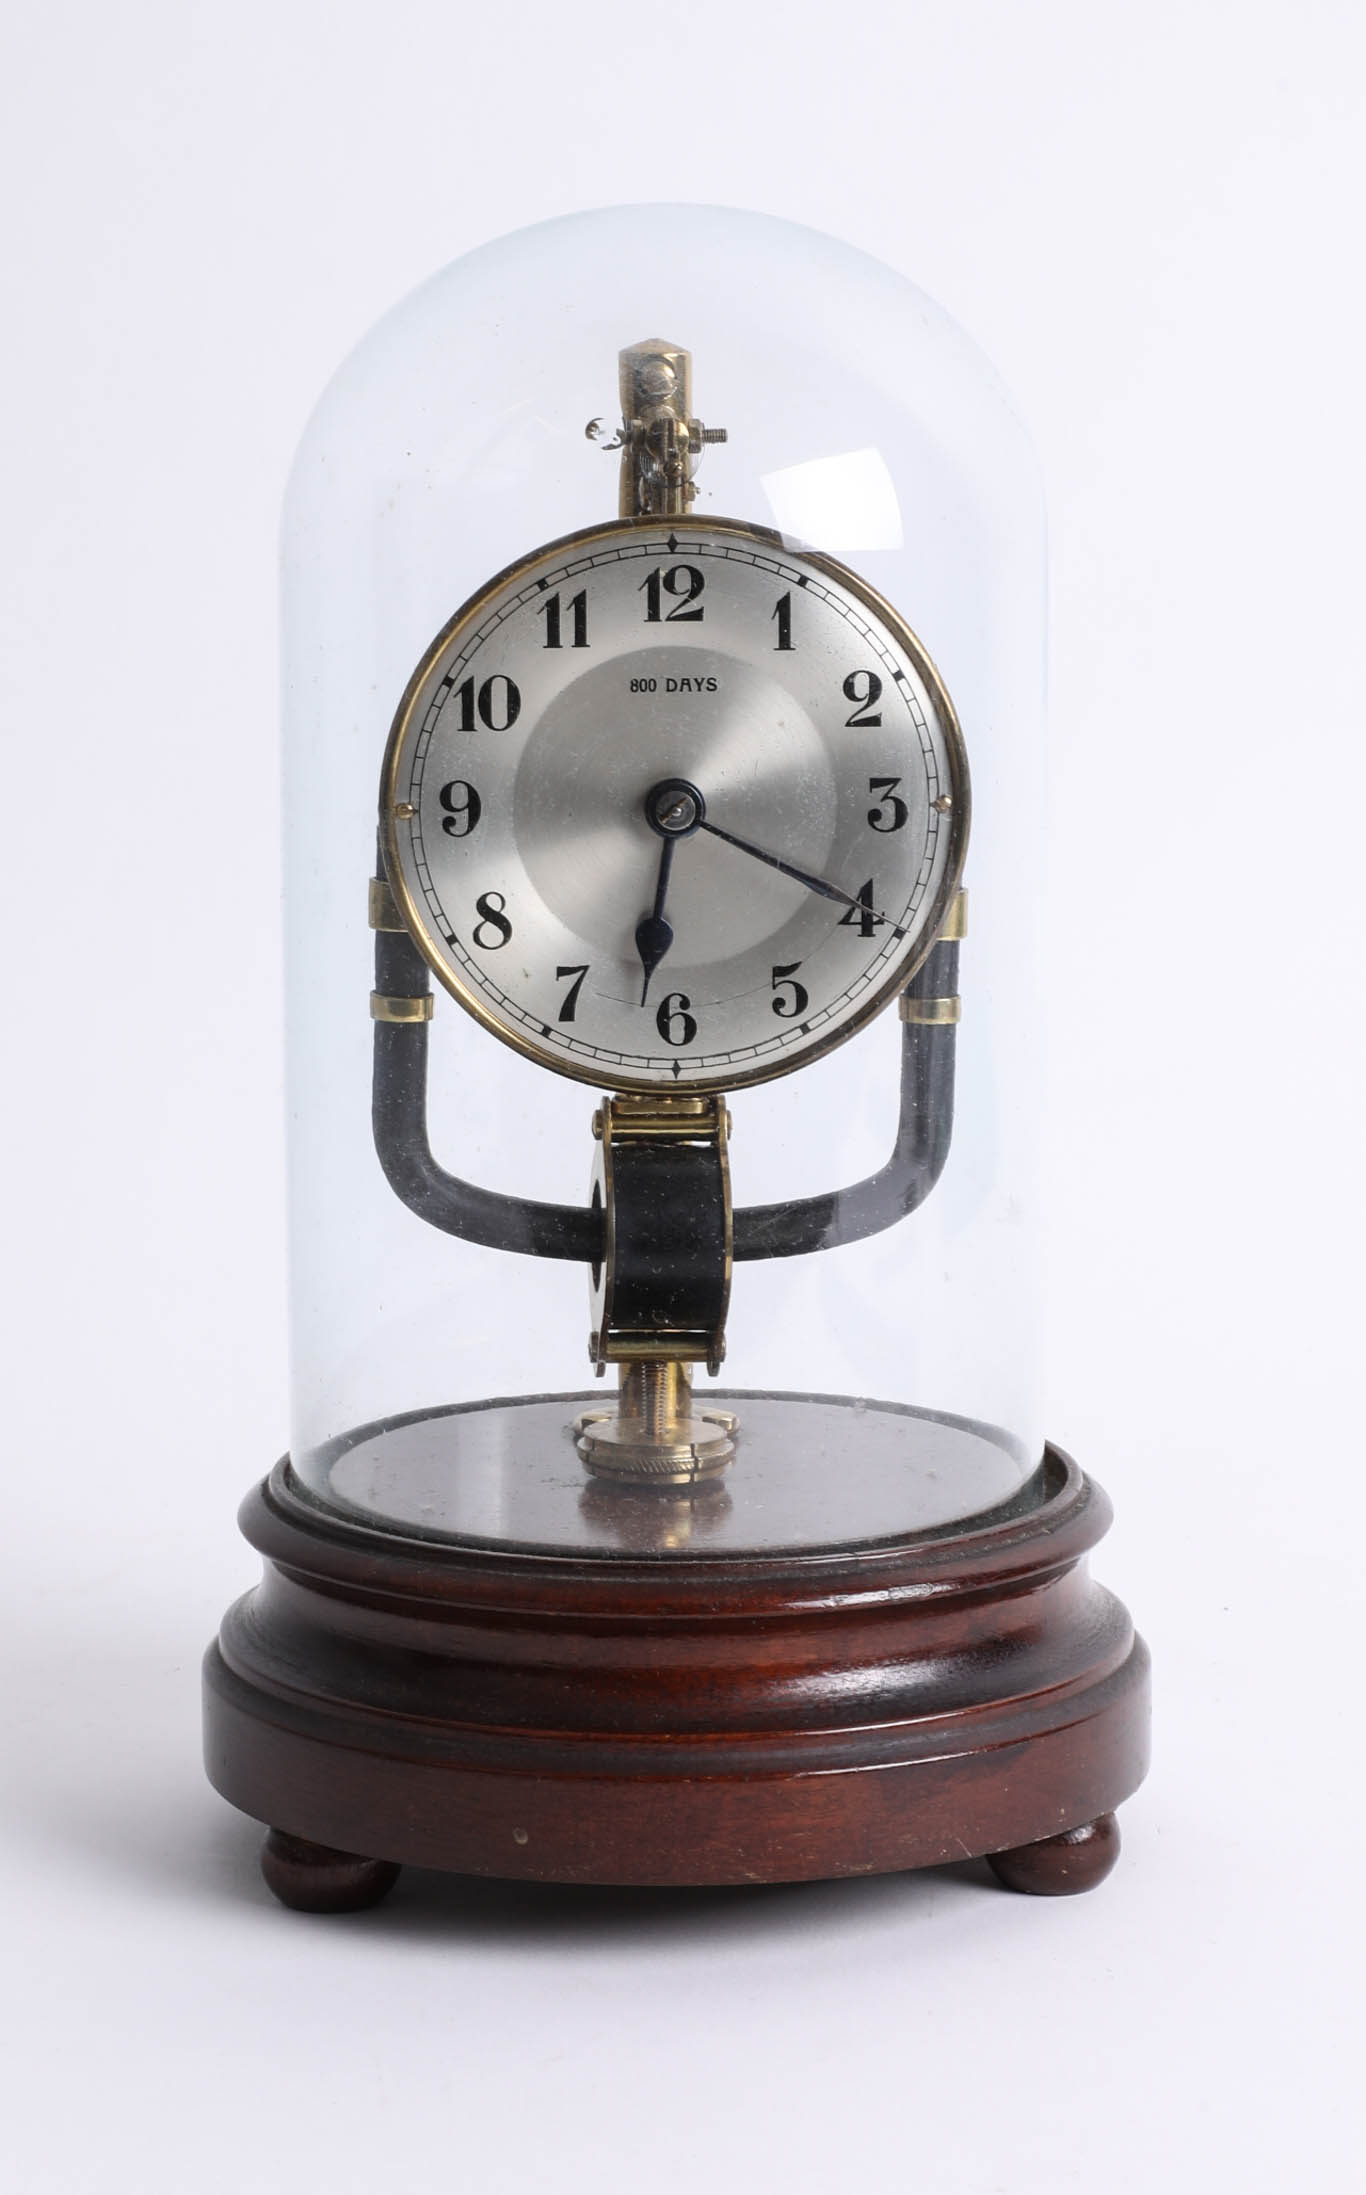 Lot 030 - An 800 day clock (electric) under dome, height 28cm.